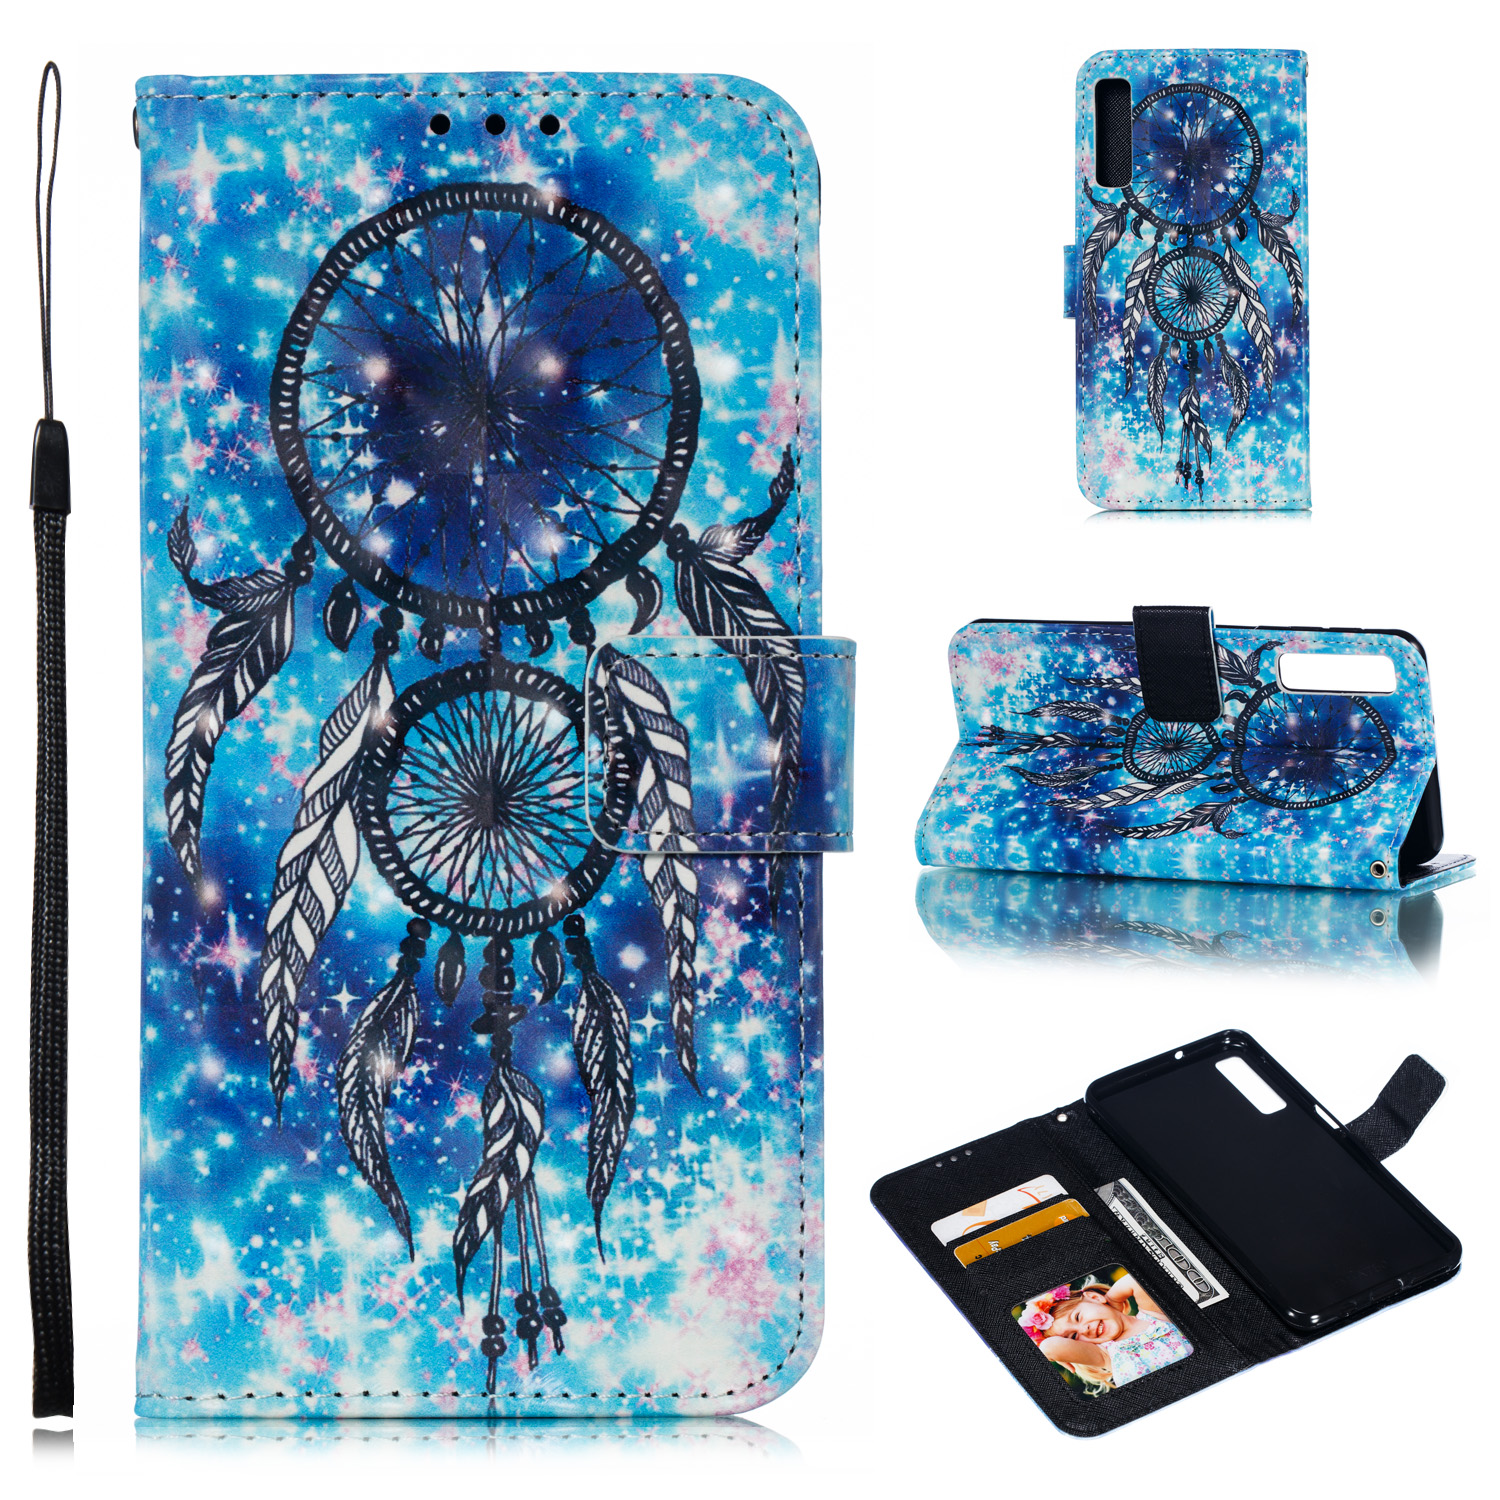 For Samsung A7 2018 3D Coloured Painted Leather Protective Phone Case with Button & Card Position & Lanyard Blue wind chime